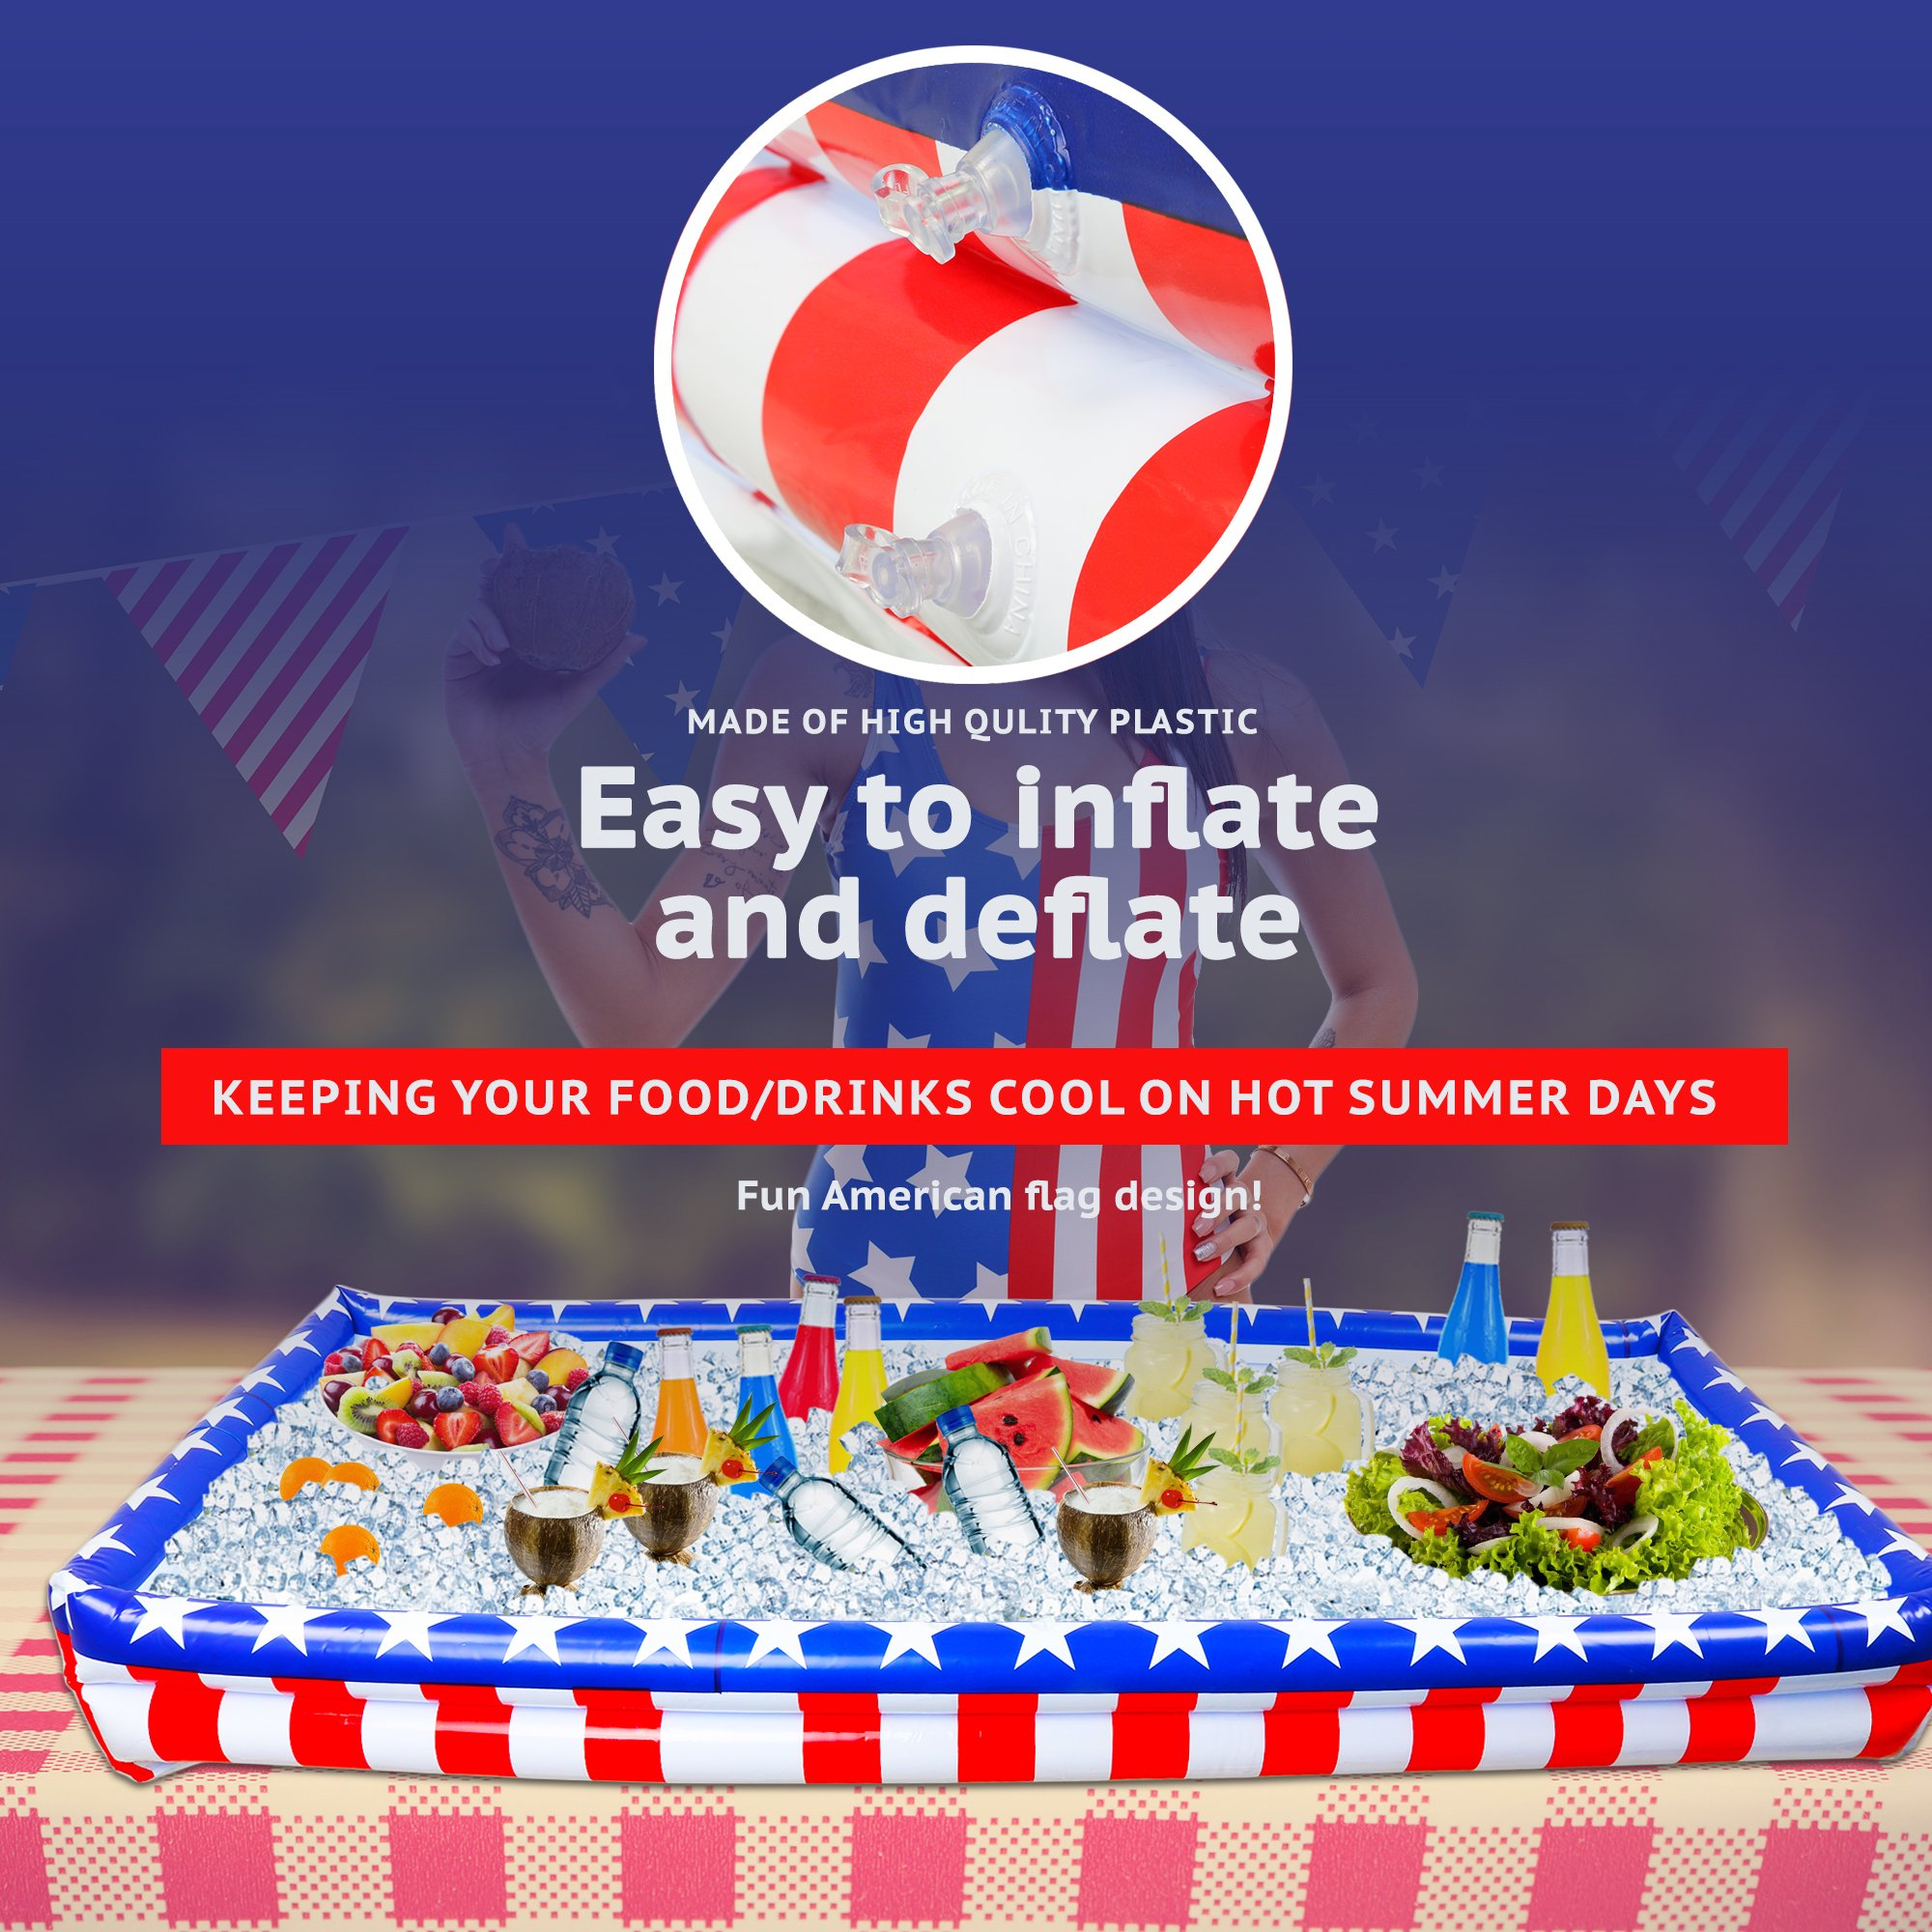 Outdoor Inflatable Buffet Cooler Server - Patriotic Red White and Blue Blow Up Cooling Tub for Serving Buffet Style Picnic - Pack of 2 by Big Mo's Toys (Image #2)